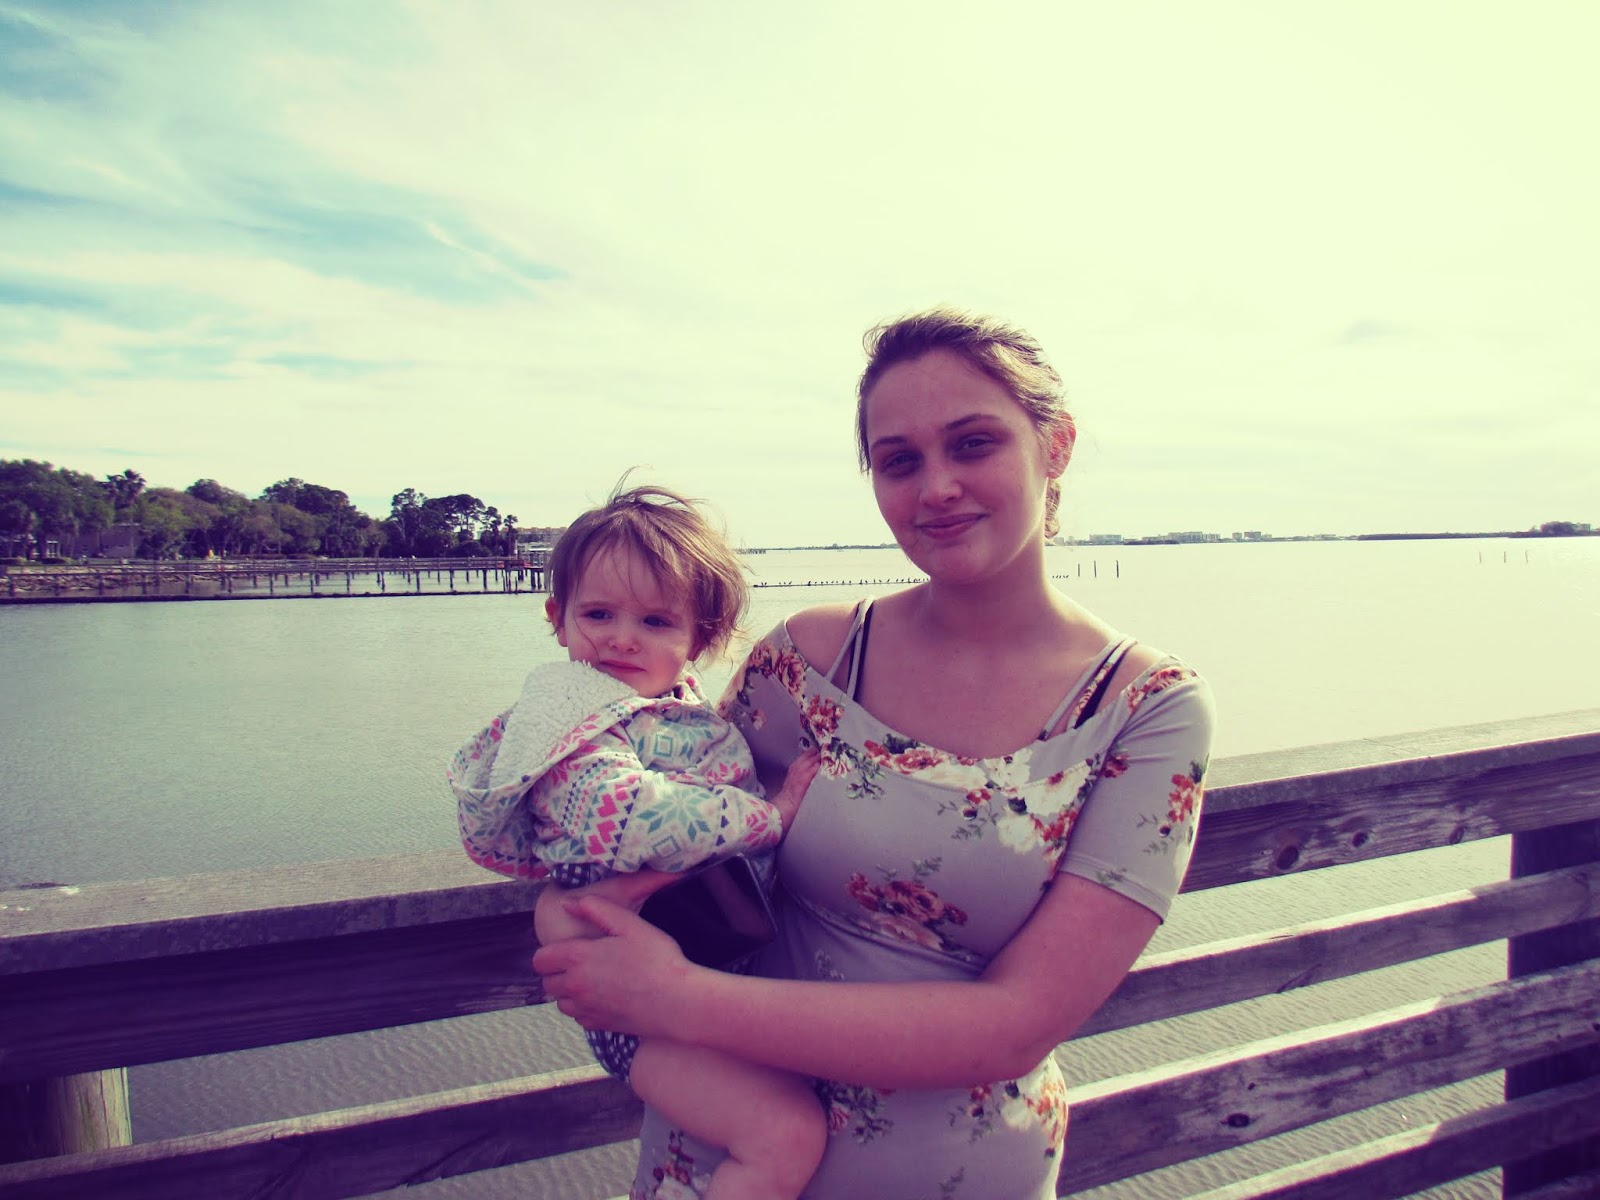 A mother and daughter snapshot with Veronica and Baby Lily at the pier in Florida